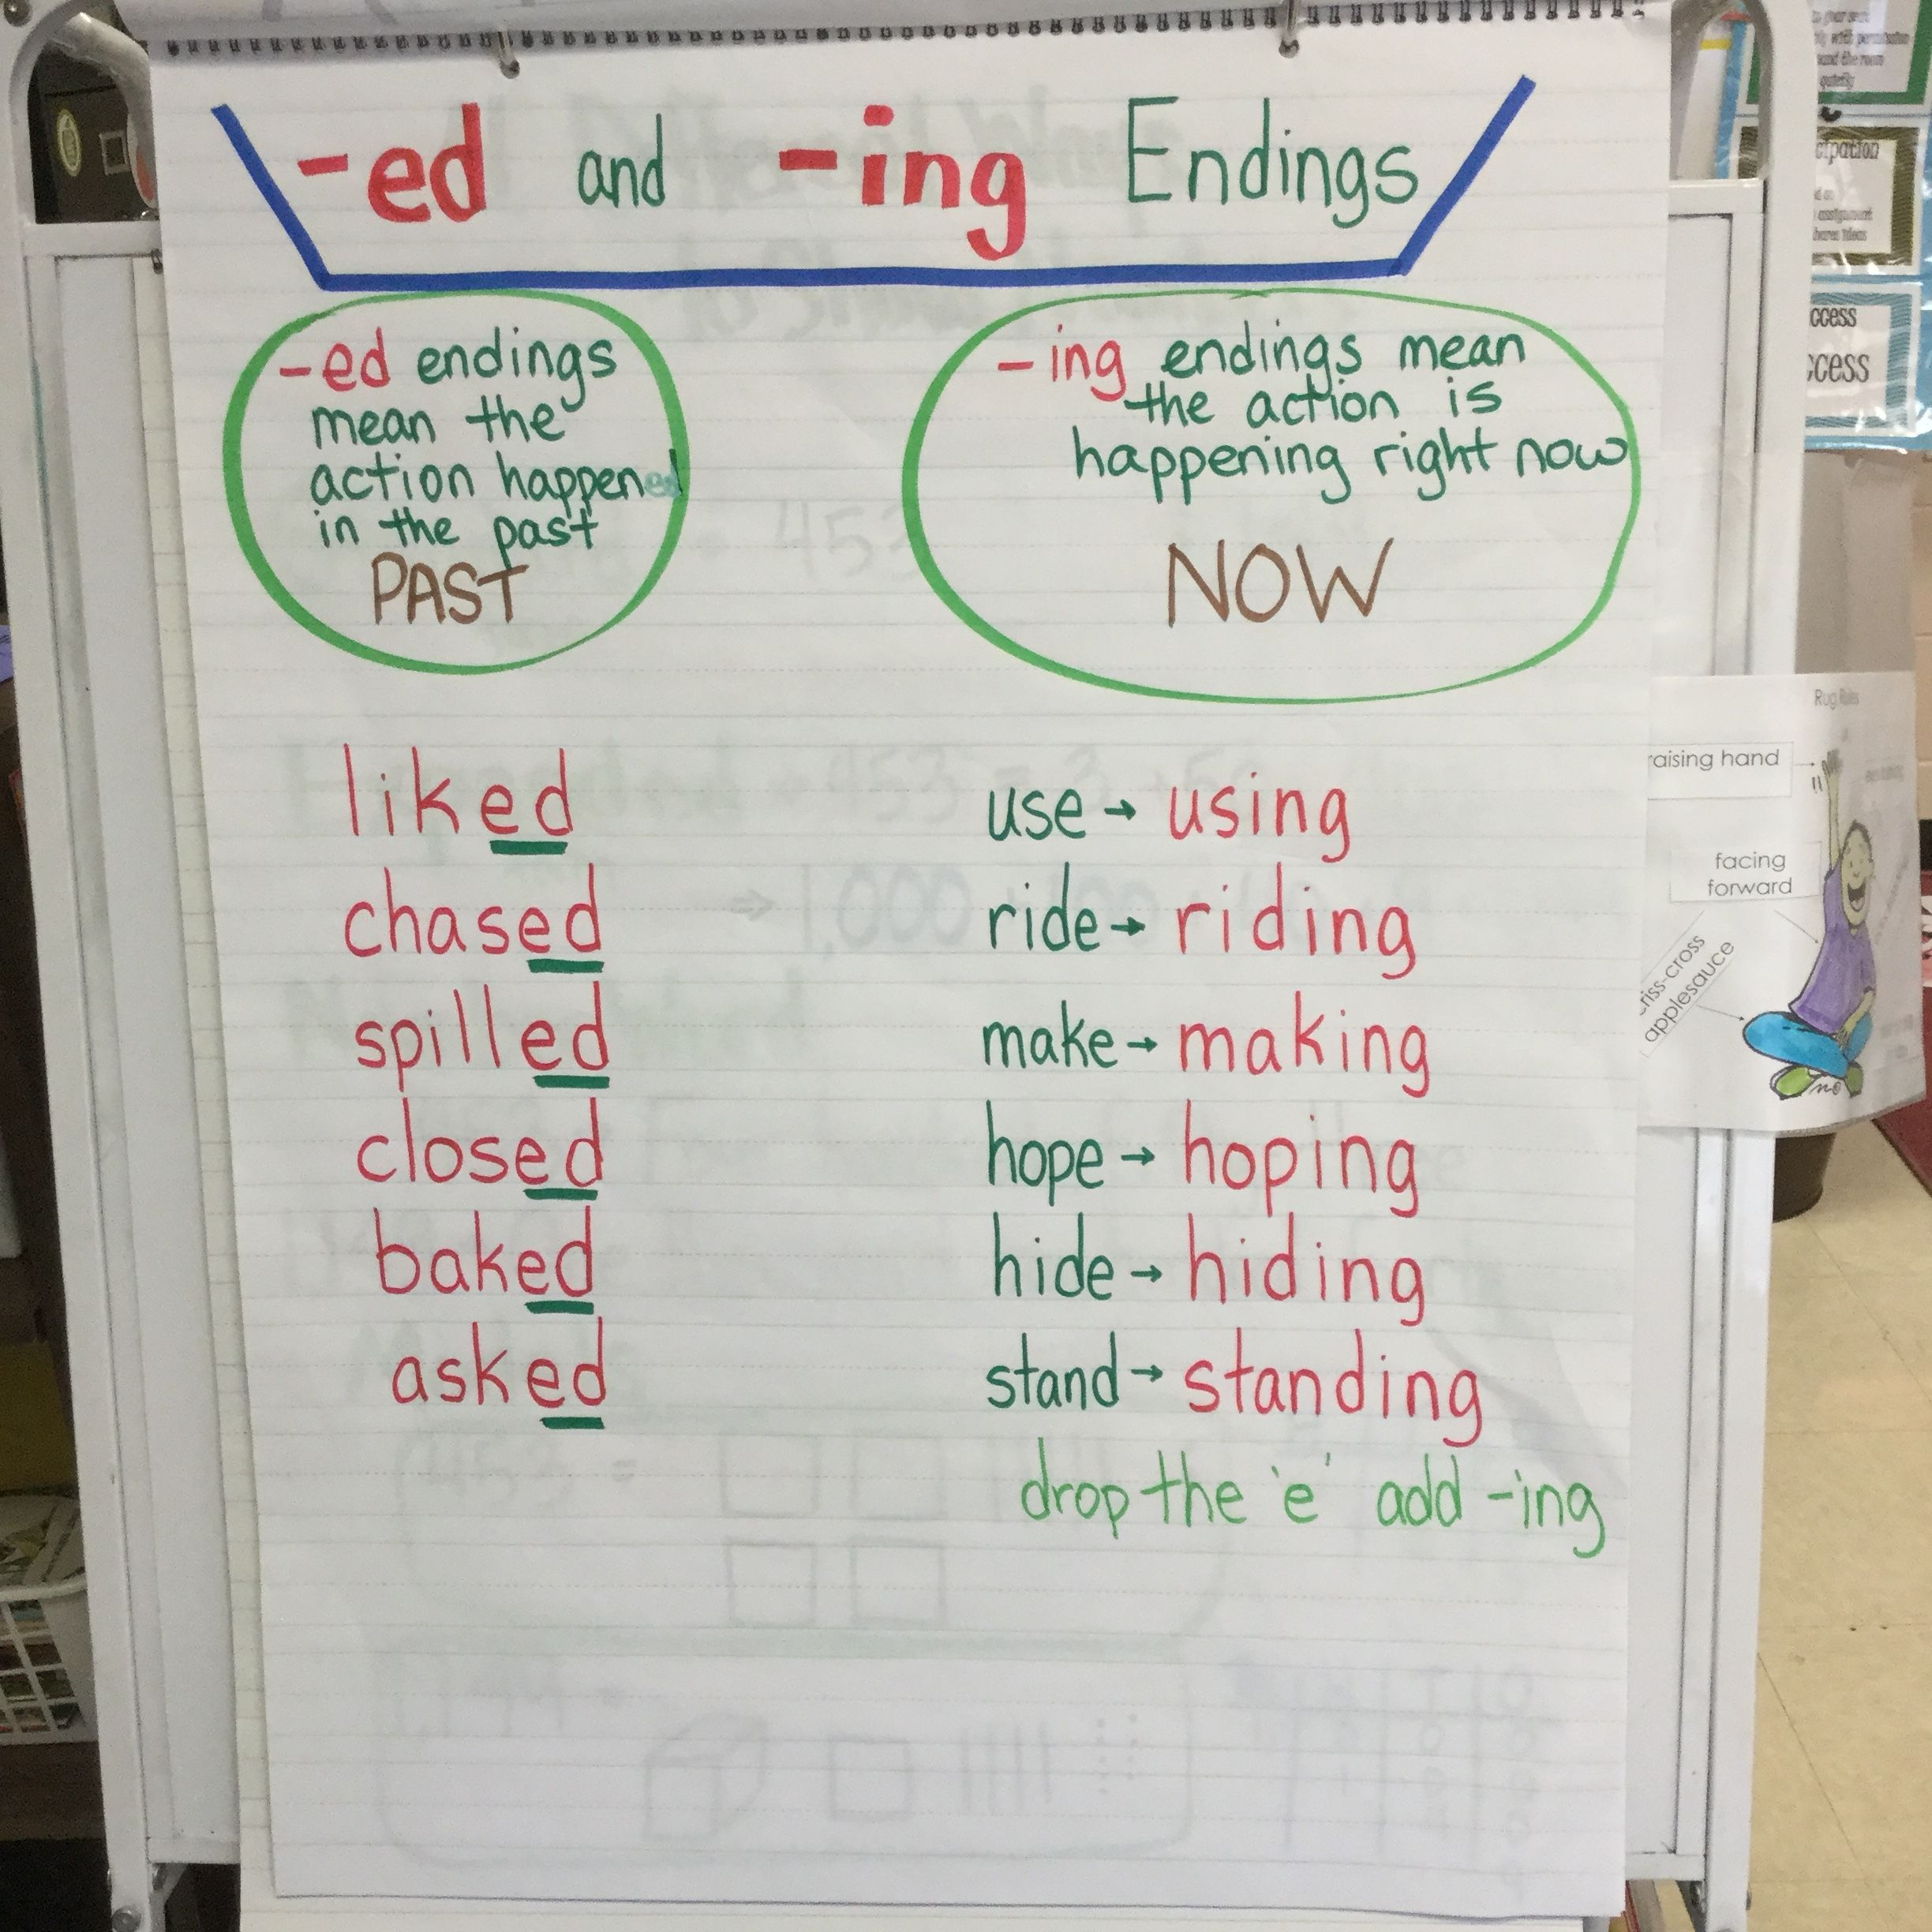 Ed And Ing Endings Drop The E And Add Ing